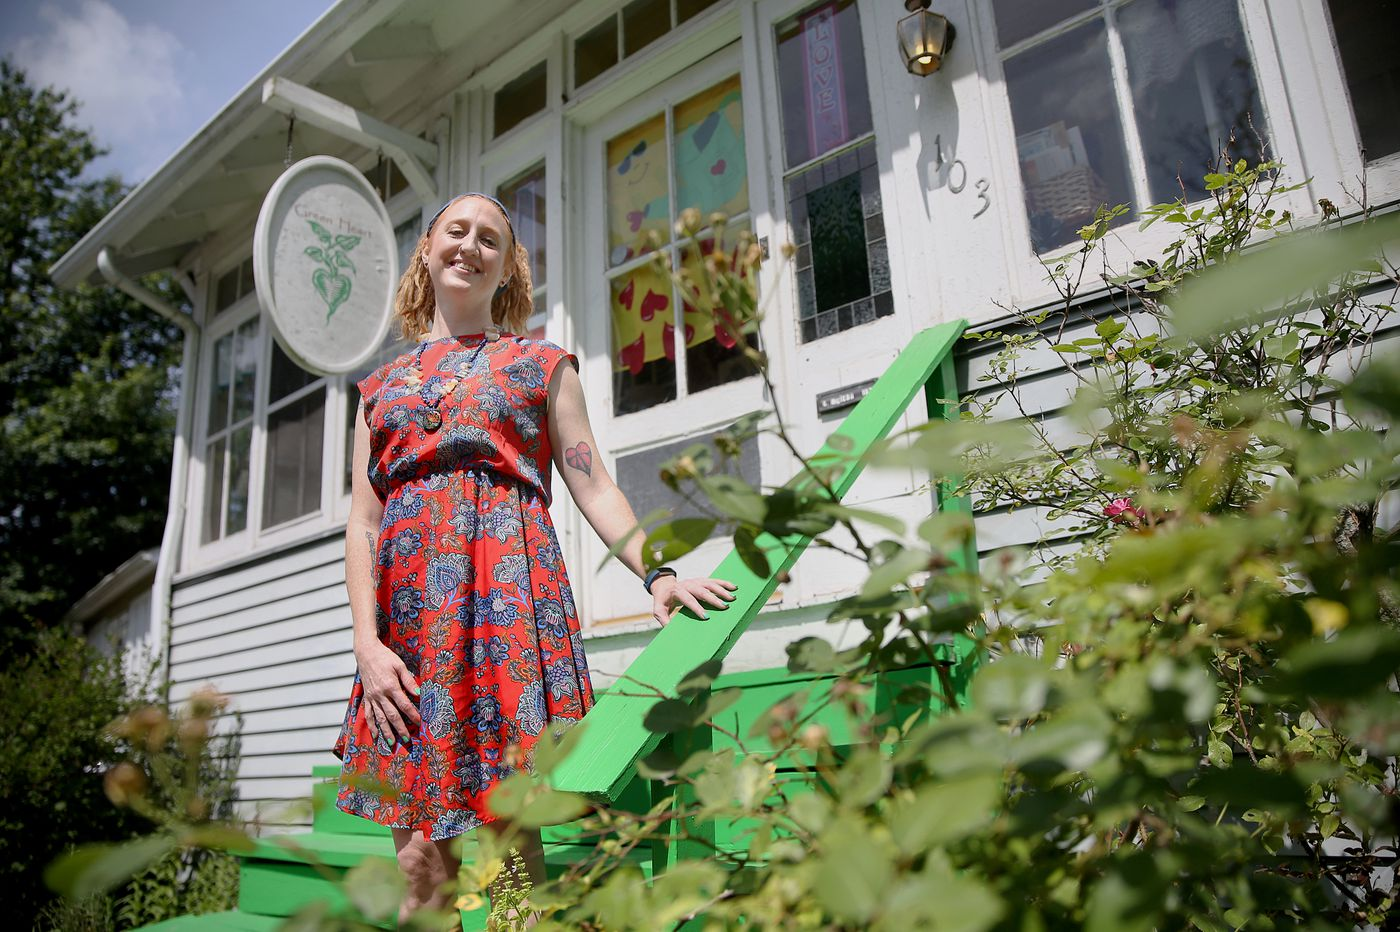 Collingswood begins shutting down Airbnbs, as cities and towns worldwide struggle to regulate it